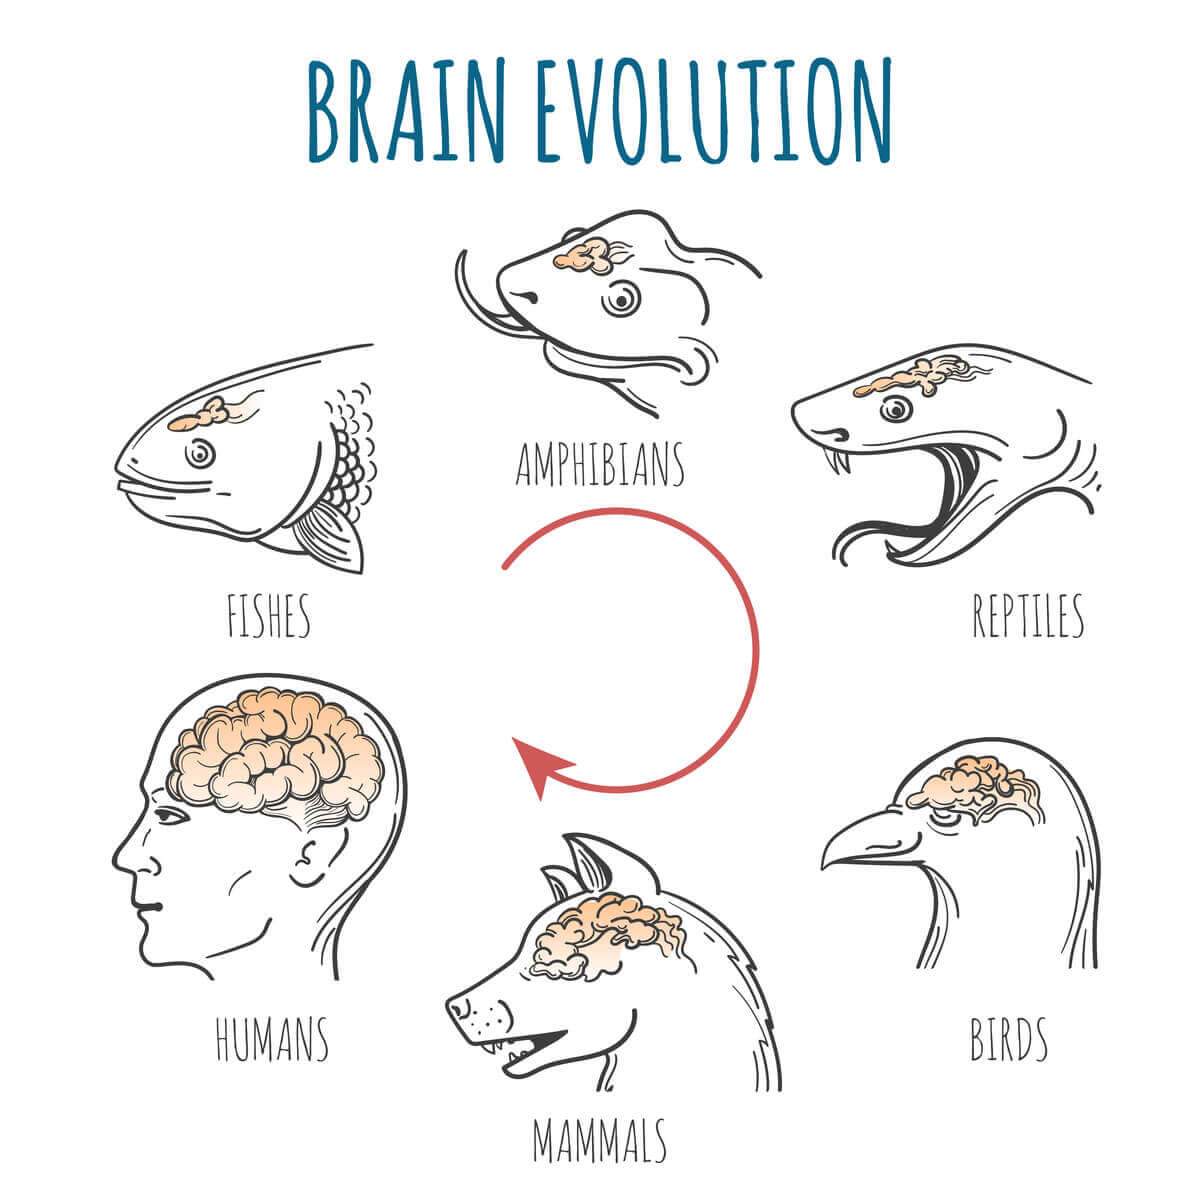 A diagram showing the evolution of the brain.